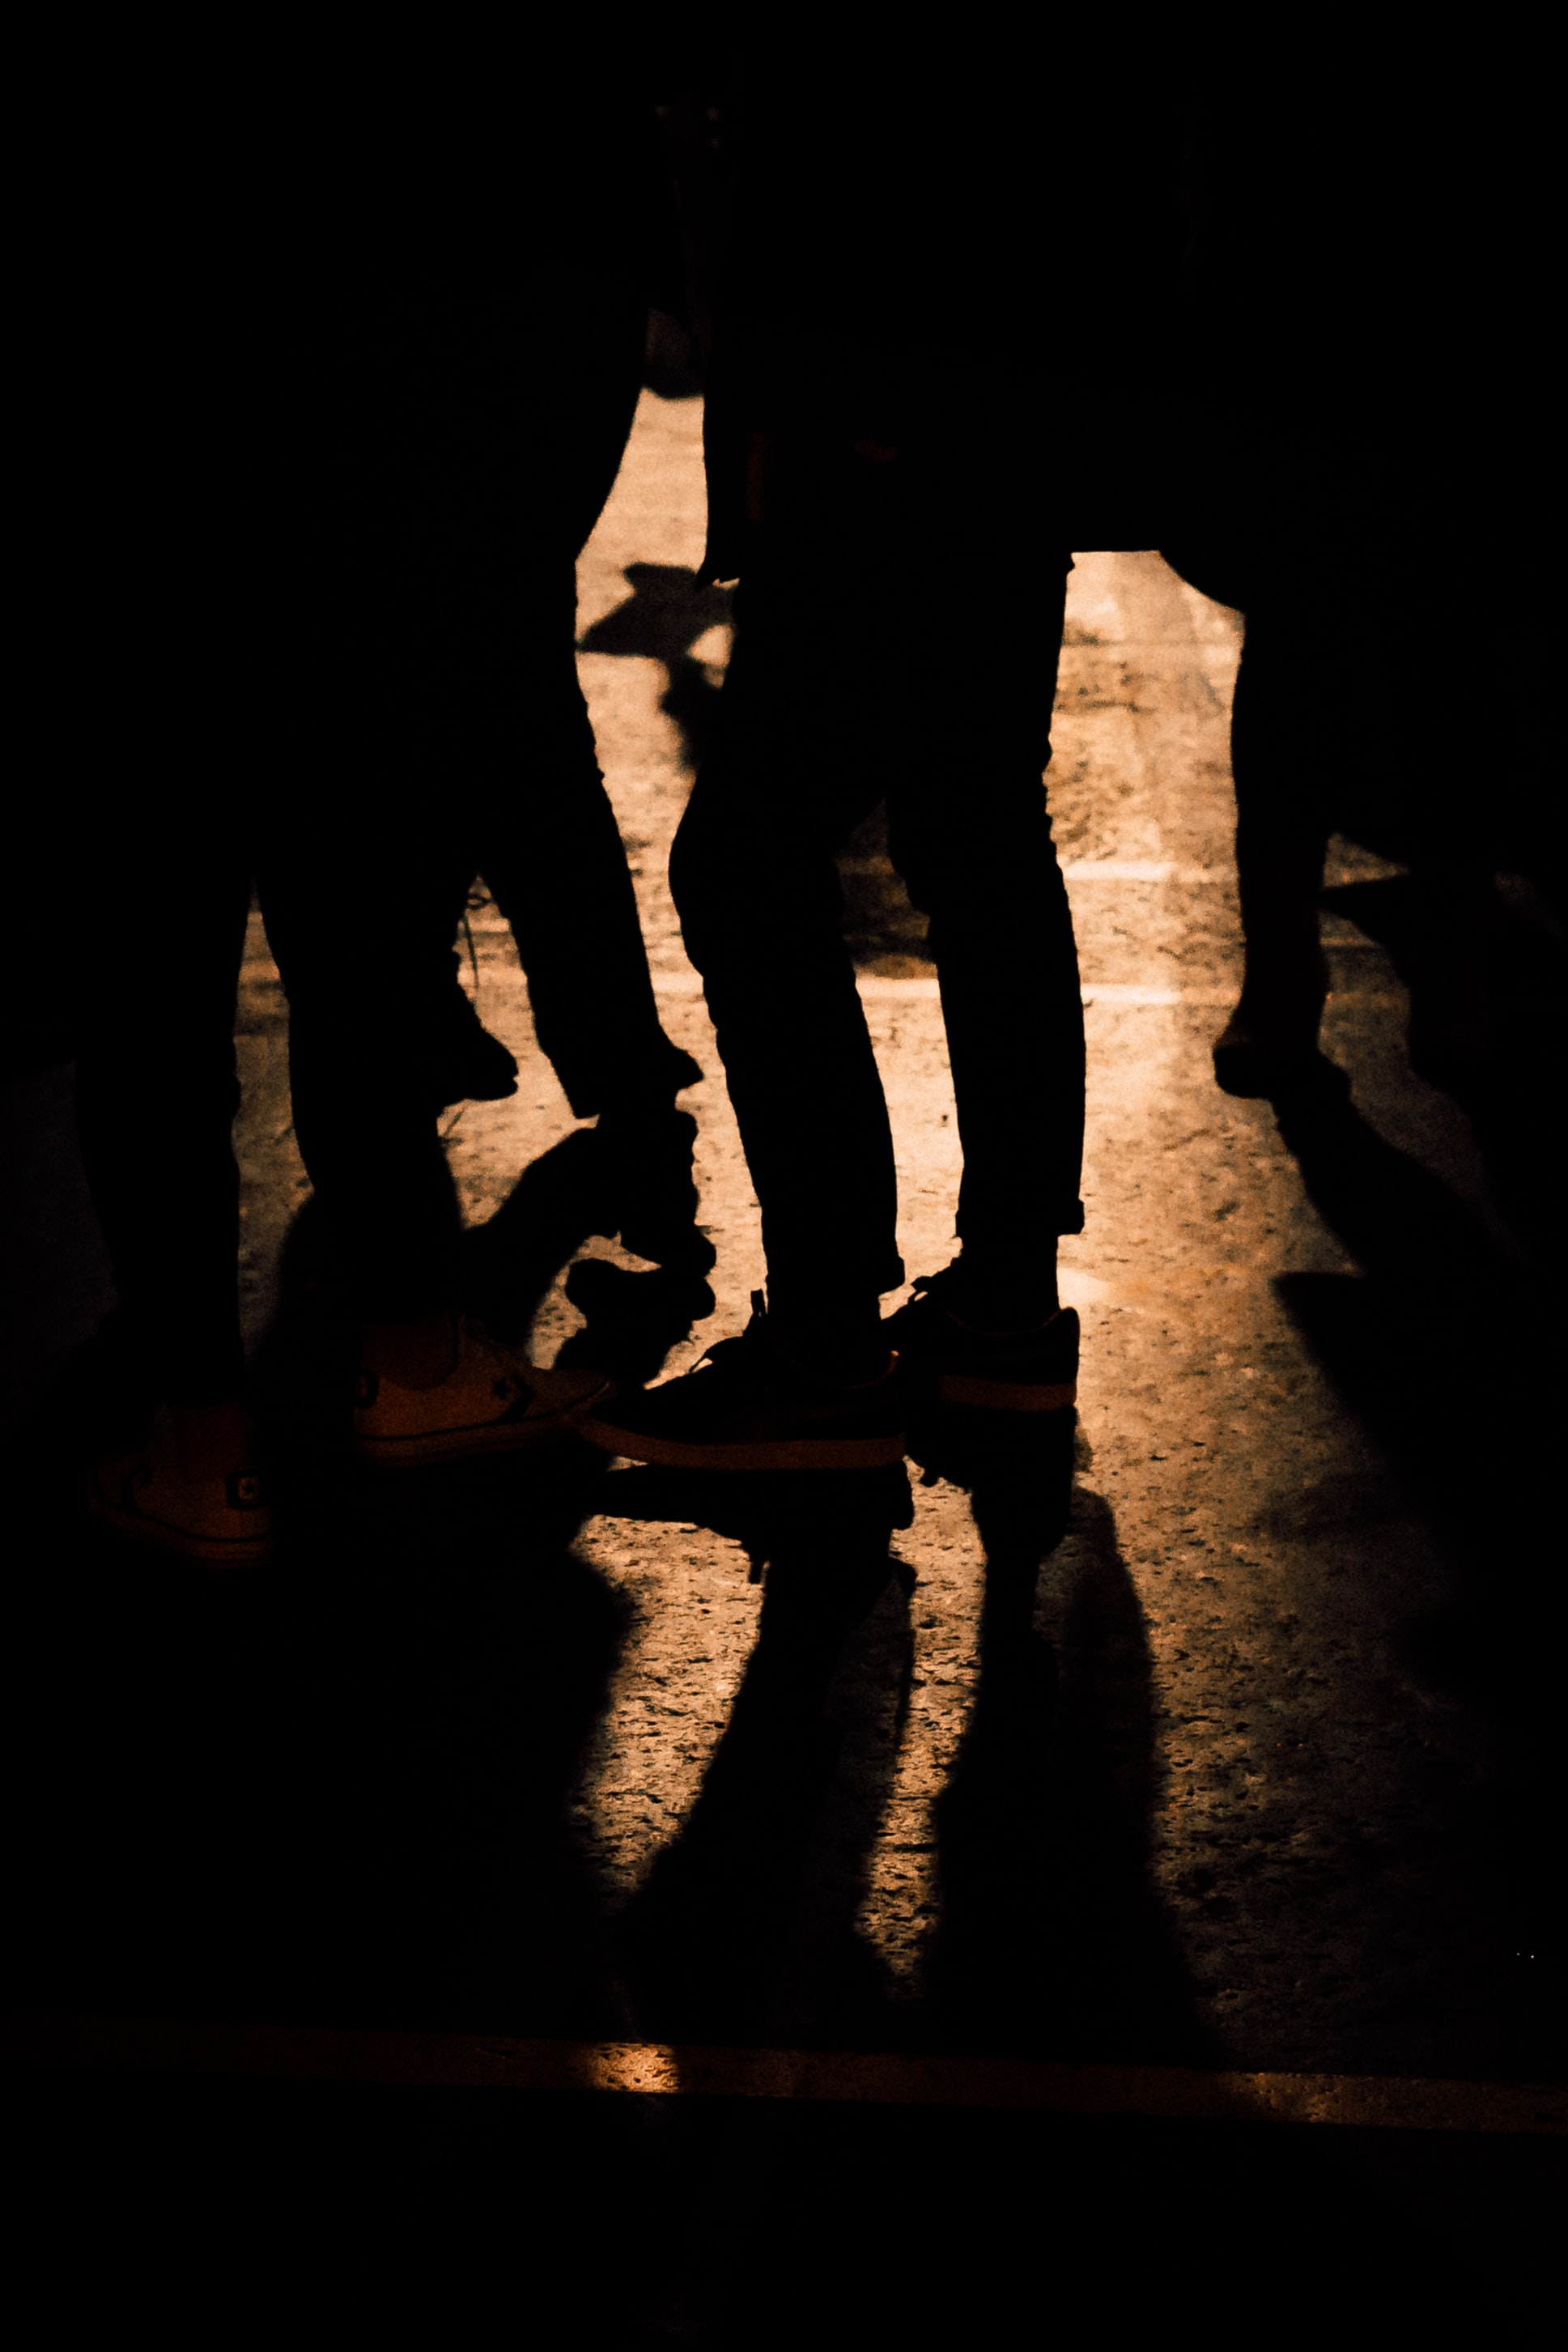 Silhouettes of people standing in a dimly-lit street seen from the waist down